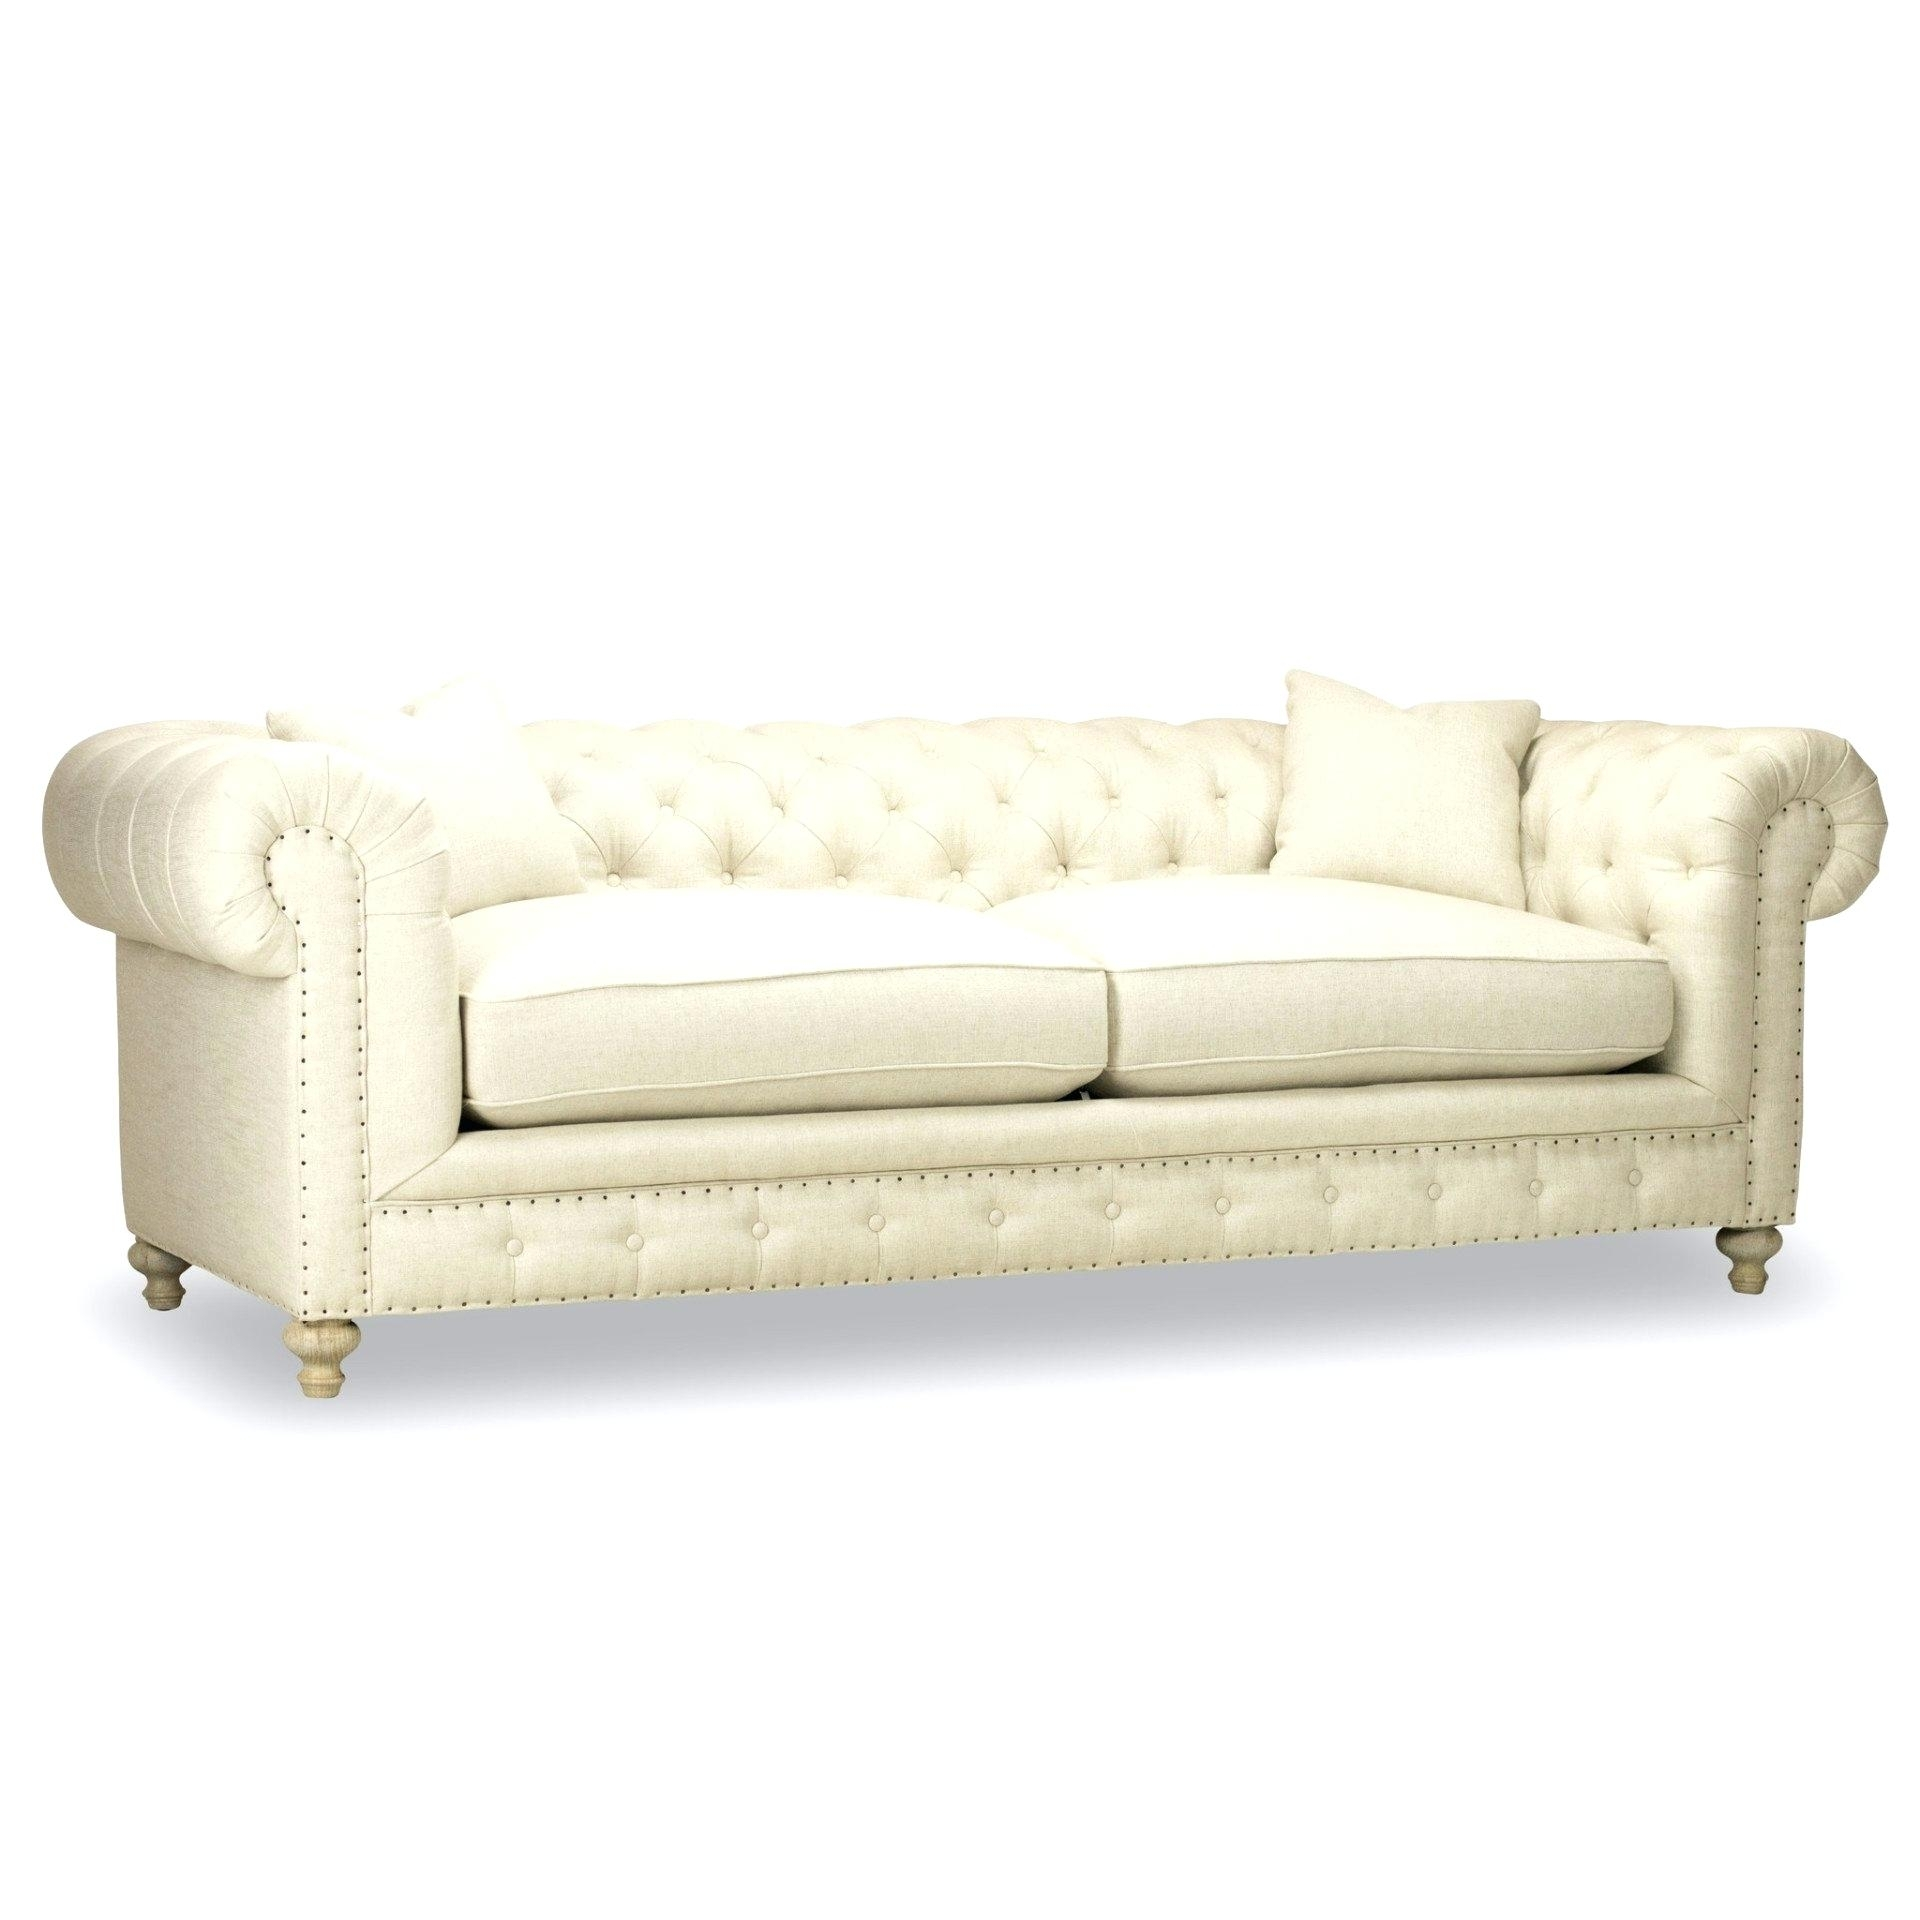 Tufted Sofas Furniture Sale Macys Cheap – Xorroxinirratia with Sectional Sofas Under 700 (Image 15 of 15)